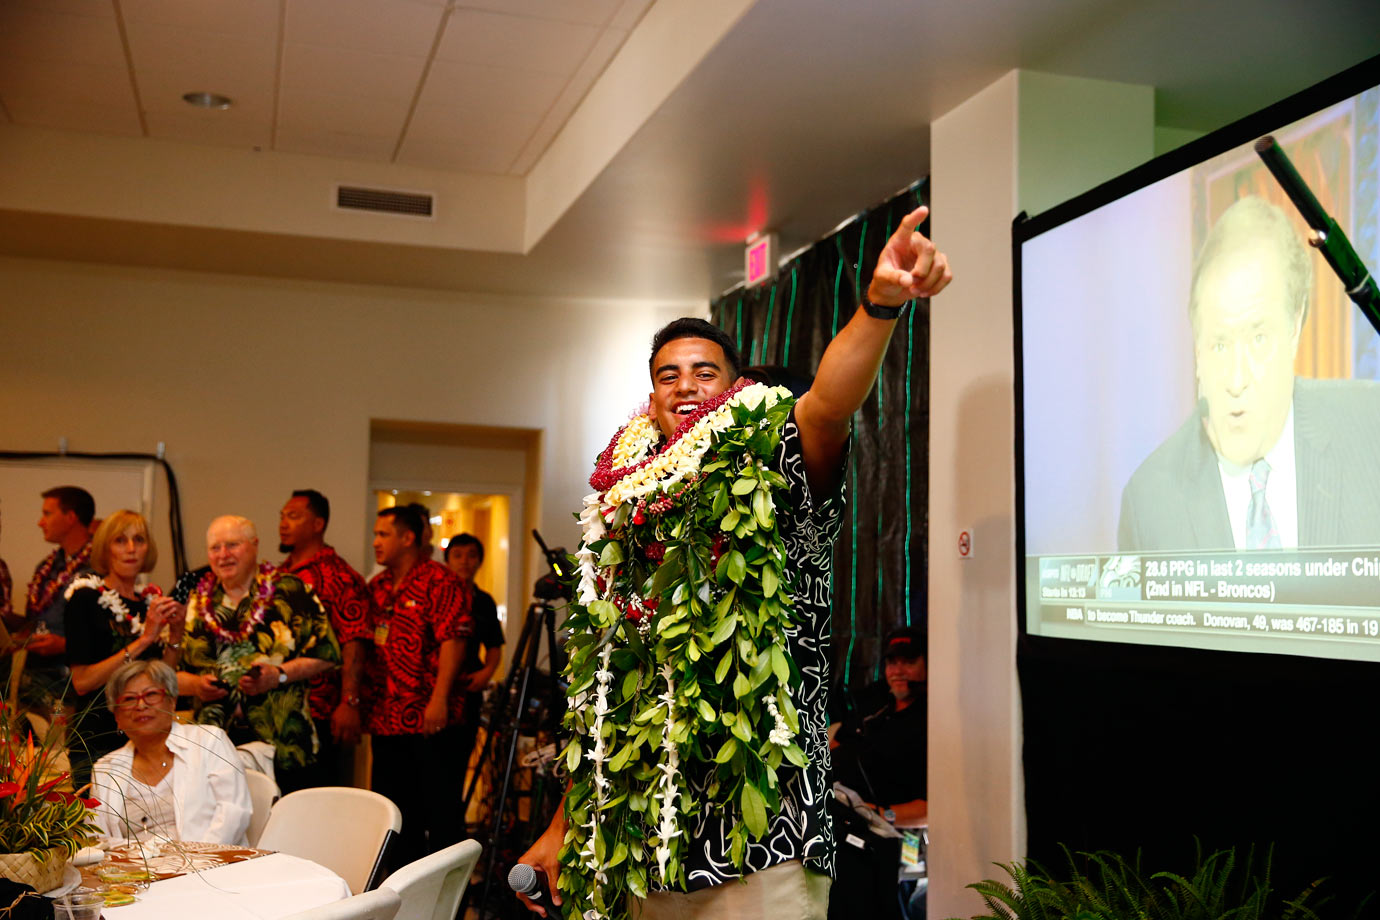 Laden with leis, Marcus Mariota celebrates being drafted by the Titans at No. 2 with family and friends in his native Honolulu.